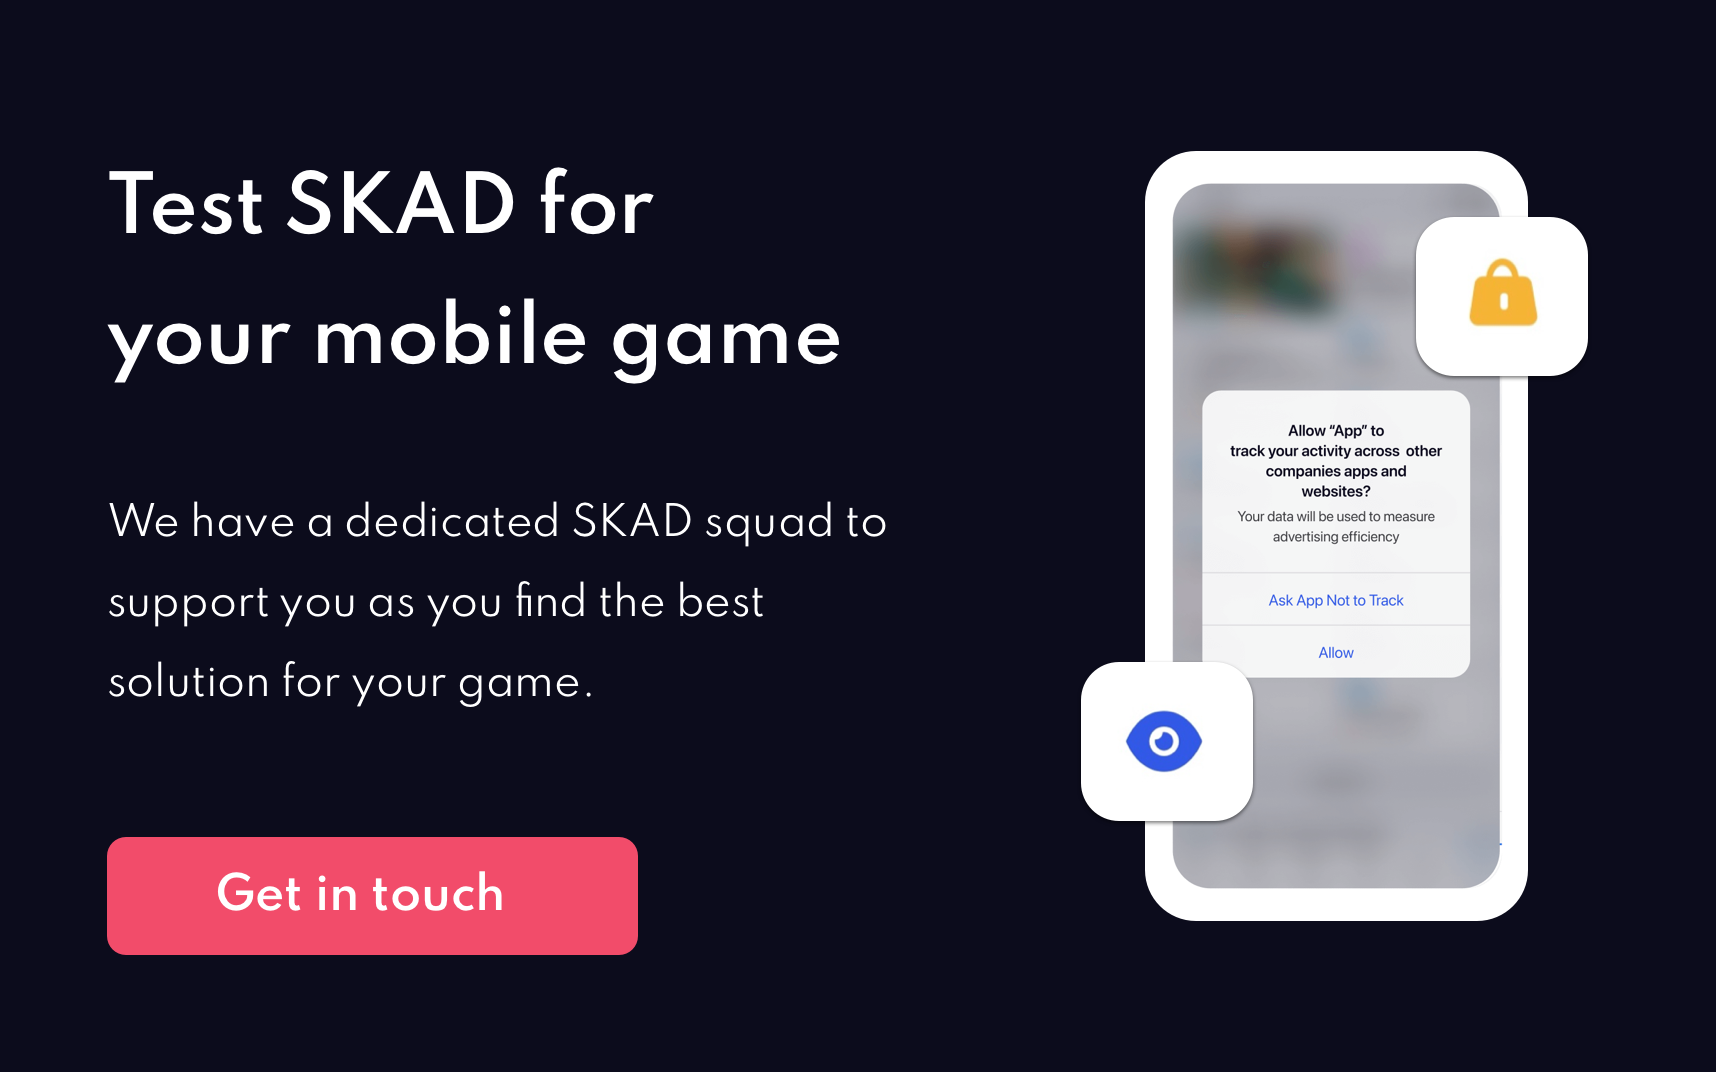 Test SKAD for your mobile game